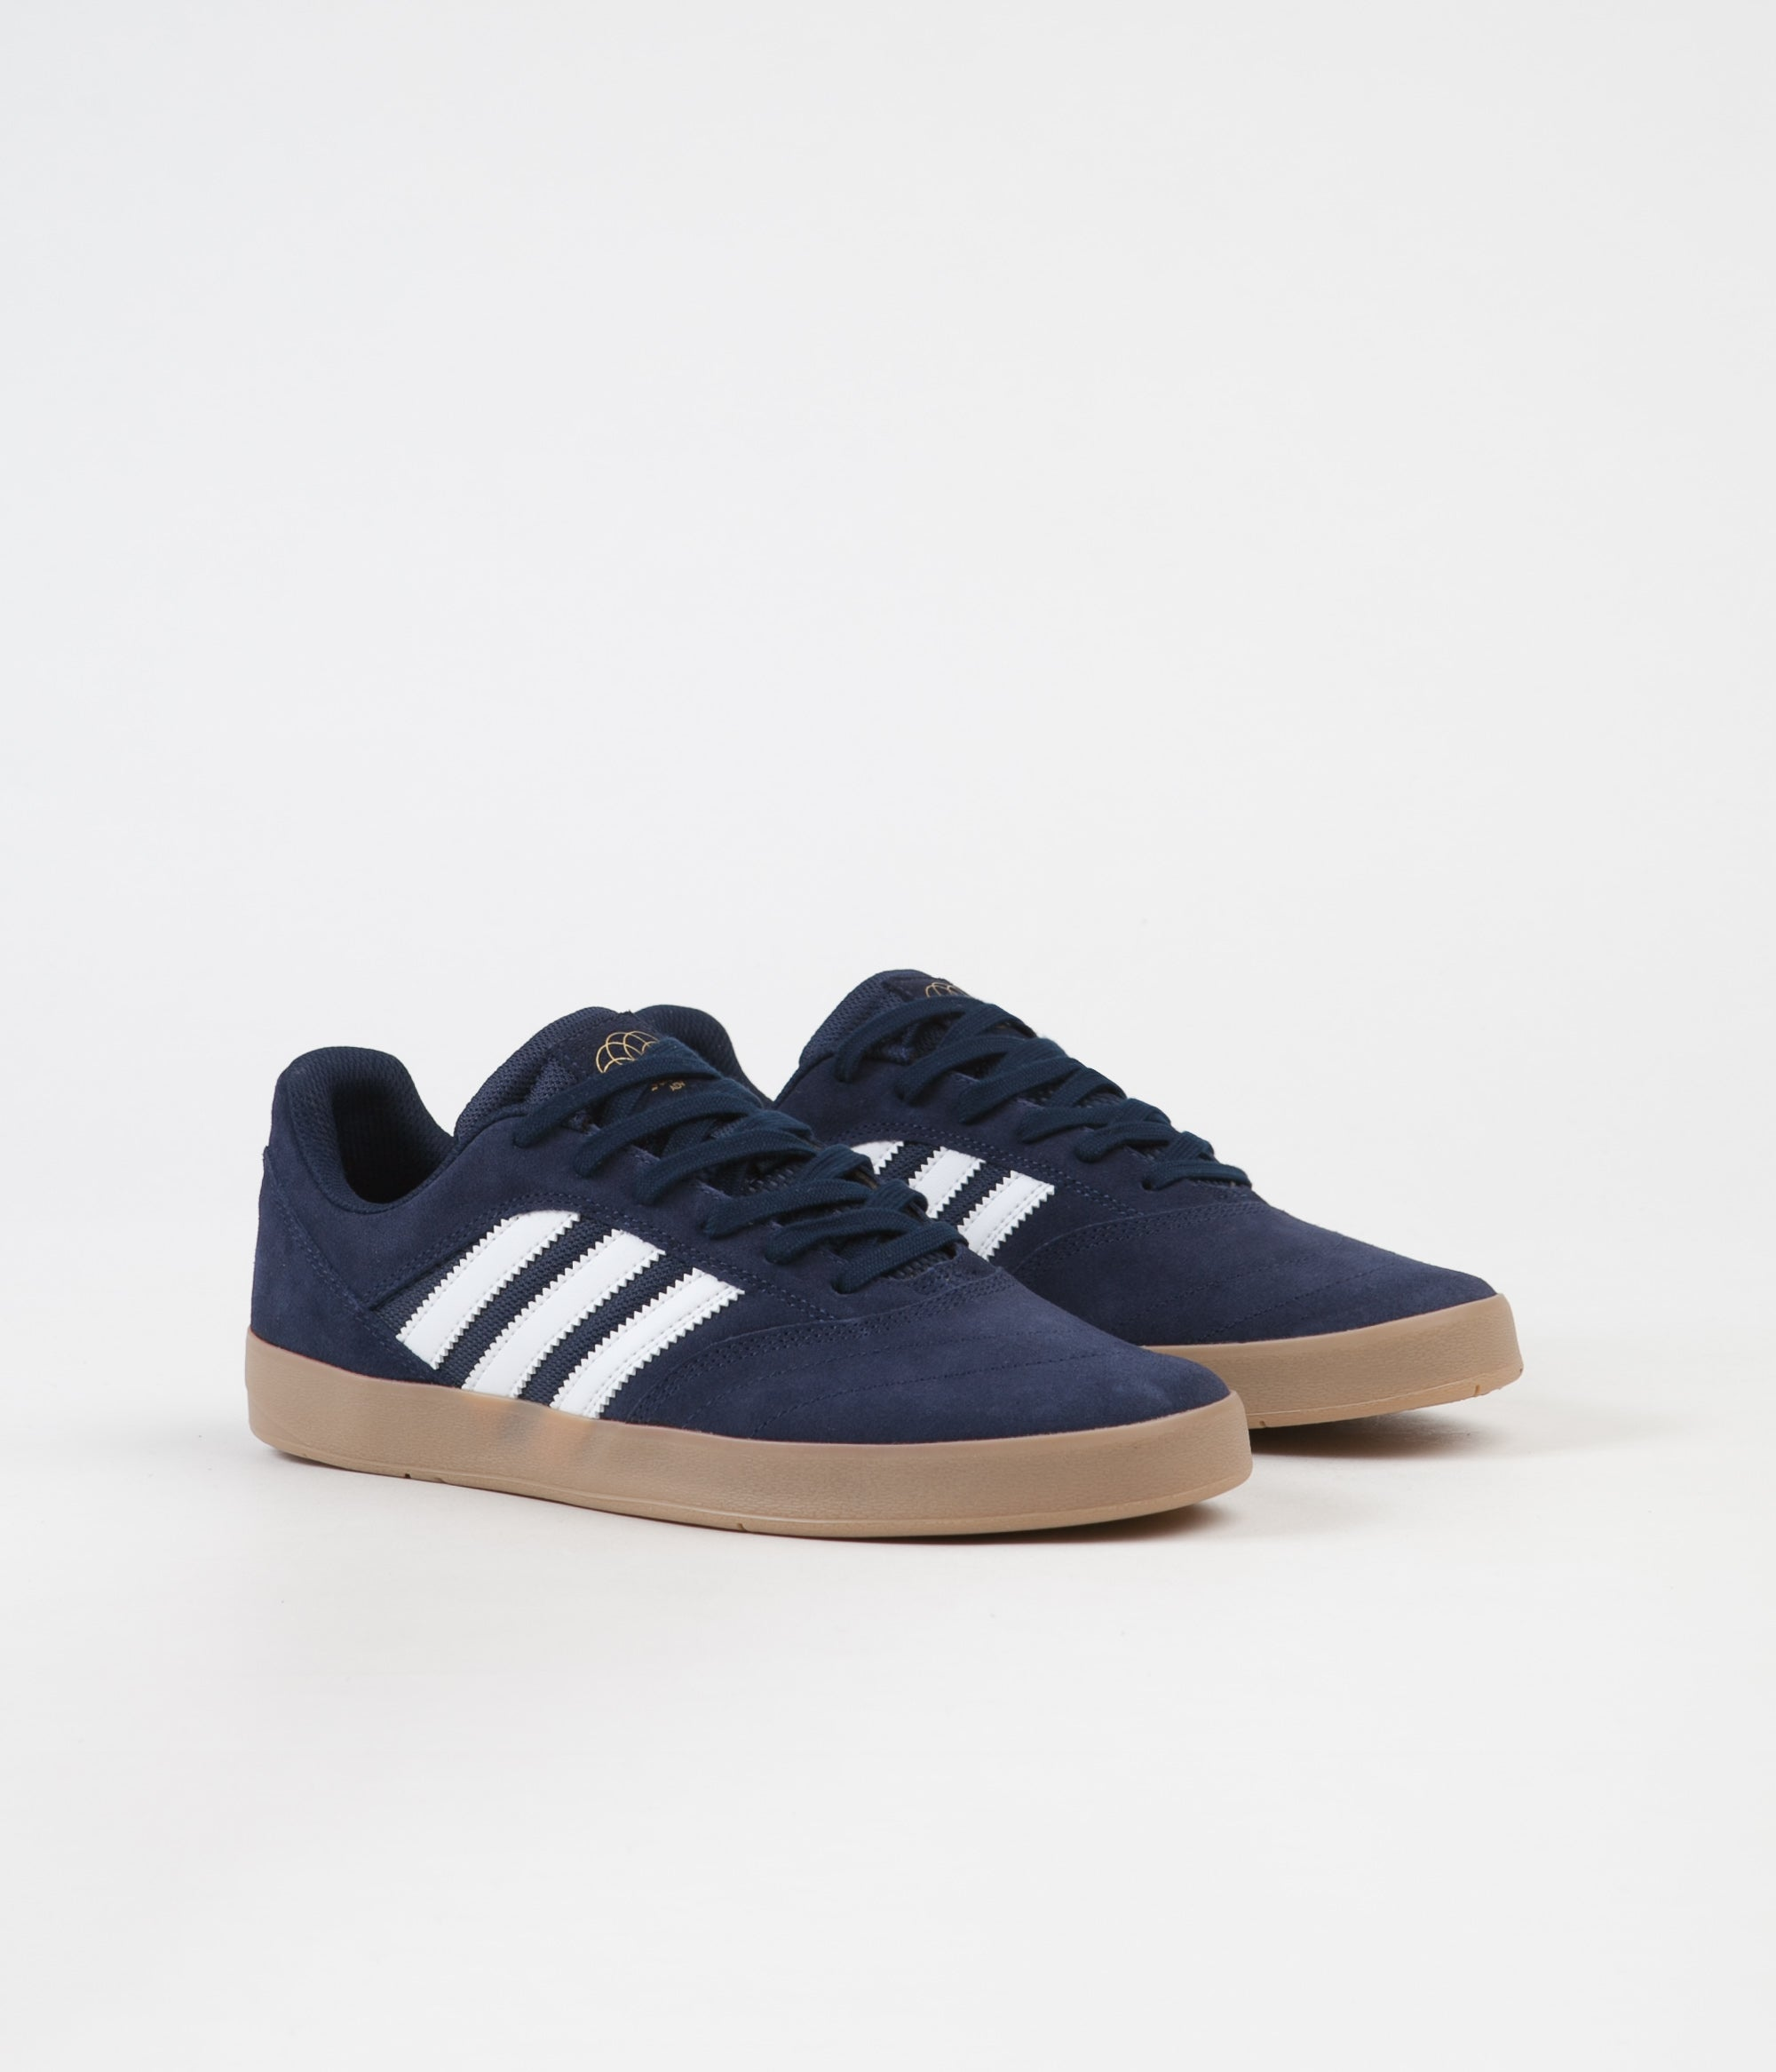 Adidas Navy Ii Ftw Shoes Gum4 Adv Suciu Collegiate White EbeD9WH2IY